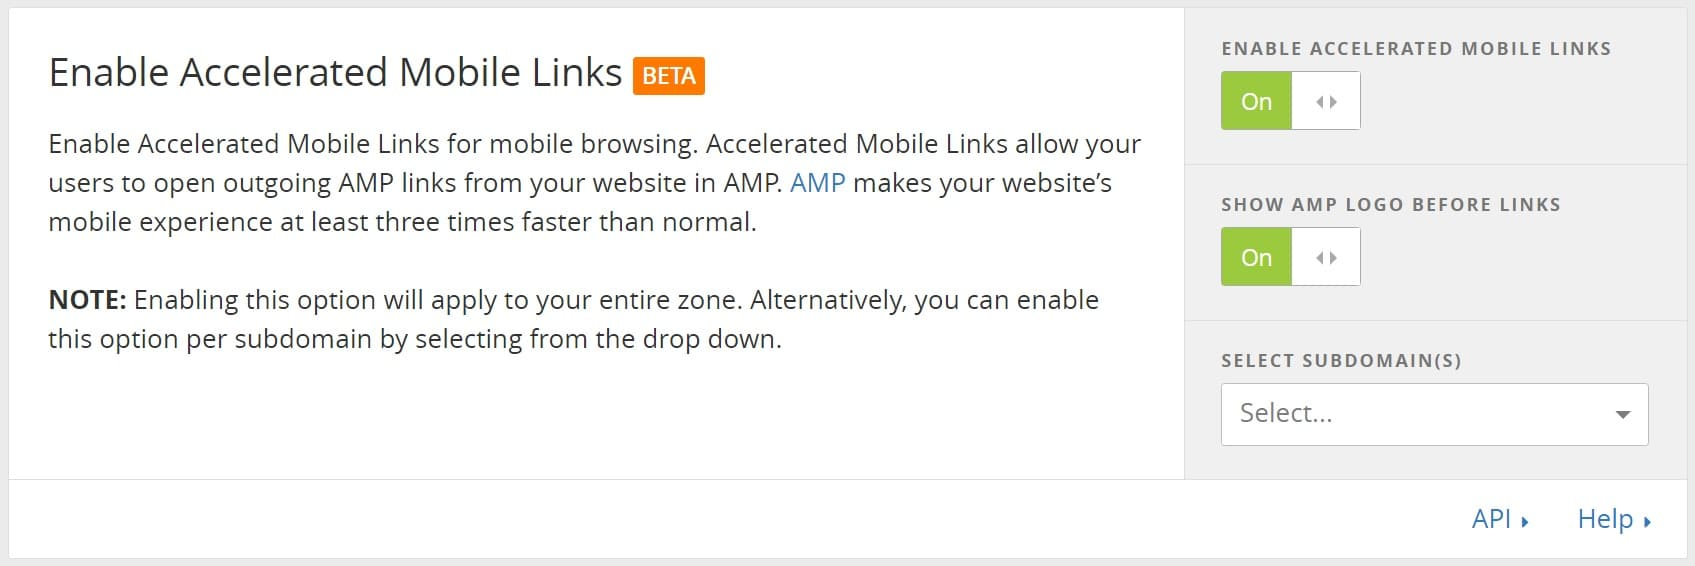 Accelerated Mobile Links di Cloudflare